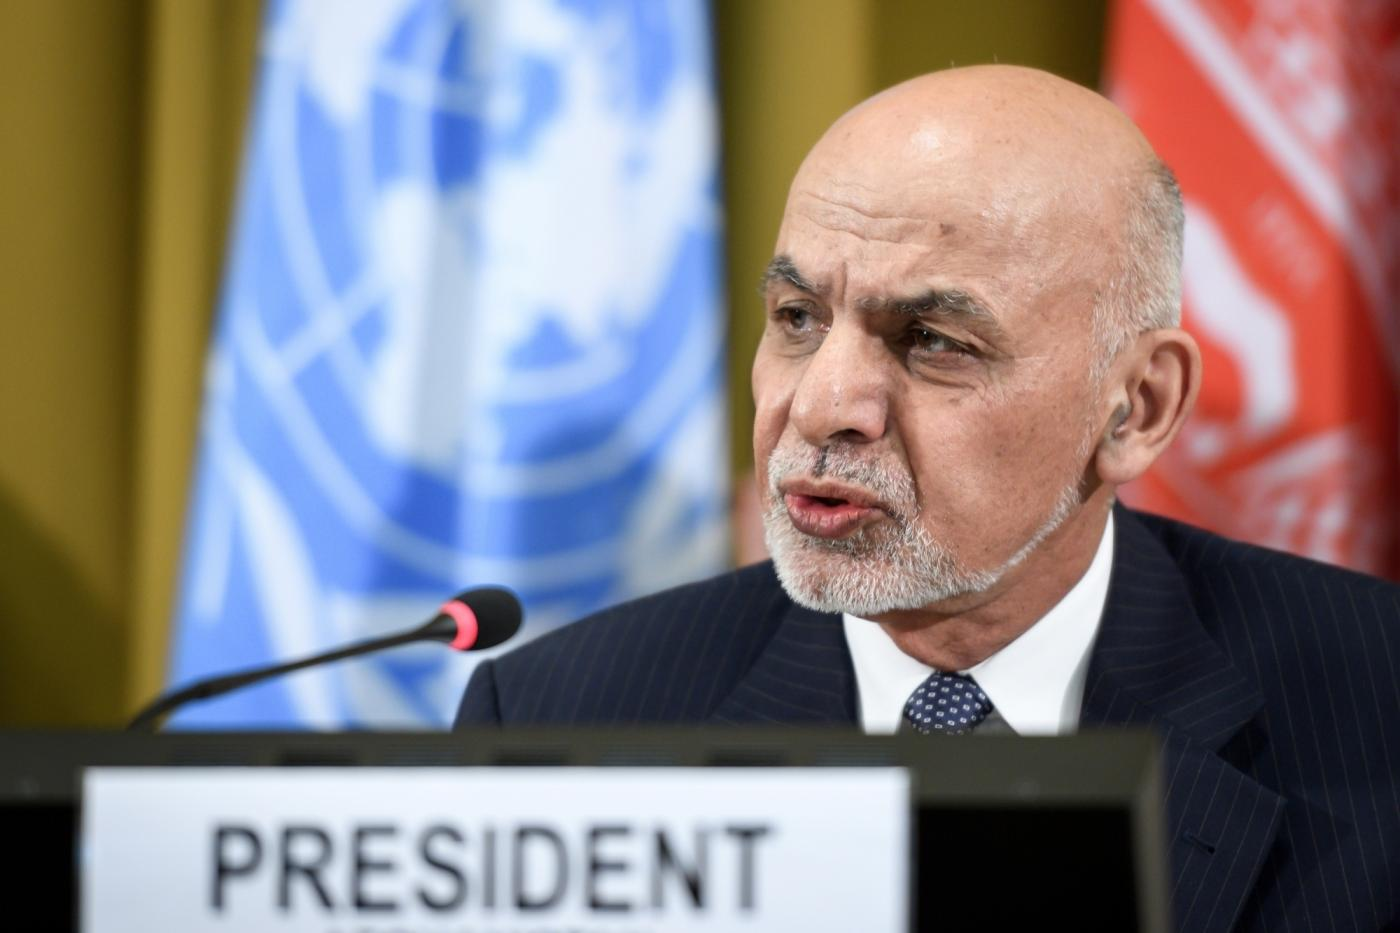 GENEVA, Nov. 28, 2018 (Xinhua) -- Afghan President Ashraf Ghani delivers a speech during the Geneva Conference on Afghanistan at the European headquarters of the United Nations in Geneva, Switzerland, Nov. 28, 2018. A top Afghan security official said that a conference that ended here Wednesday has put a renewed focus on a peace process owned and led by those in the country, and now it is up to Taliban to come forward and play a constructive role. (Xinhua/POOL/Fabrice Coffrini/IANS) by .